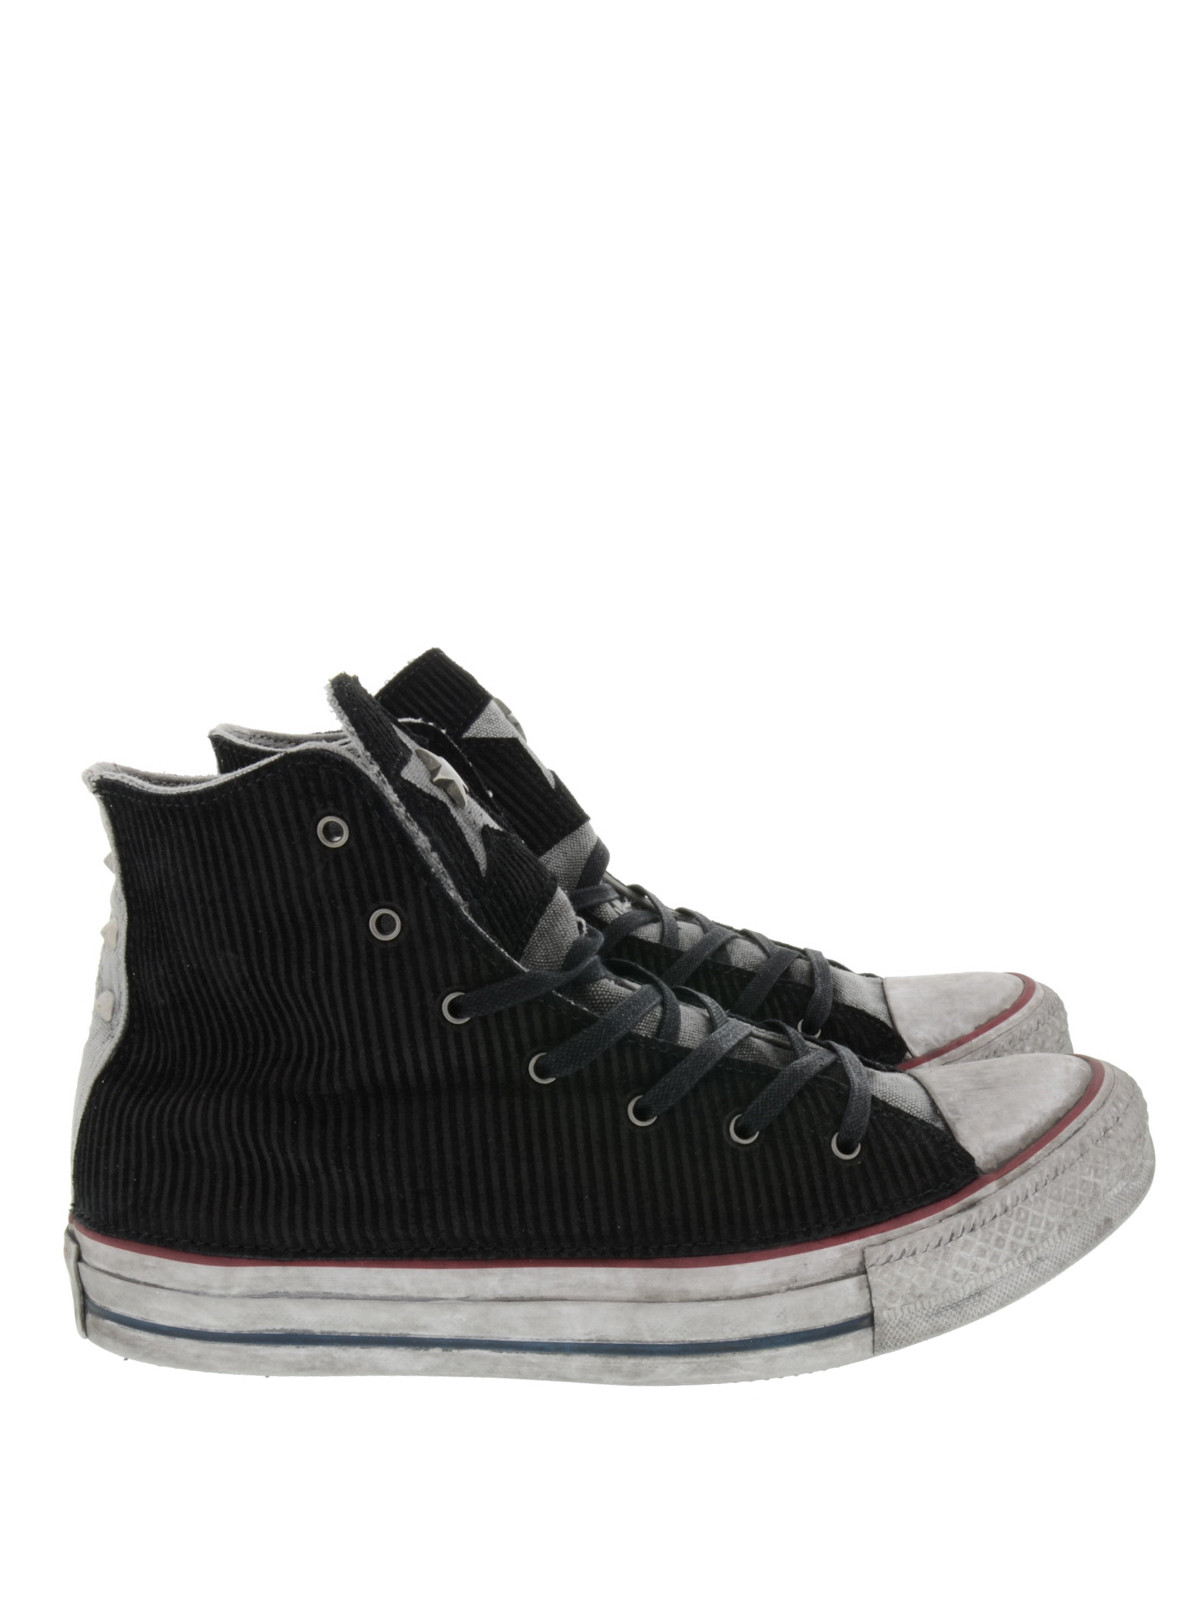 premium ribbed sneakers by converse limited edition. Black Bedroom Furniture Sets. Home Design Ideas